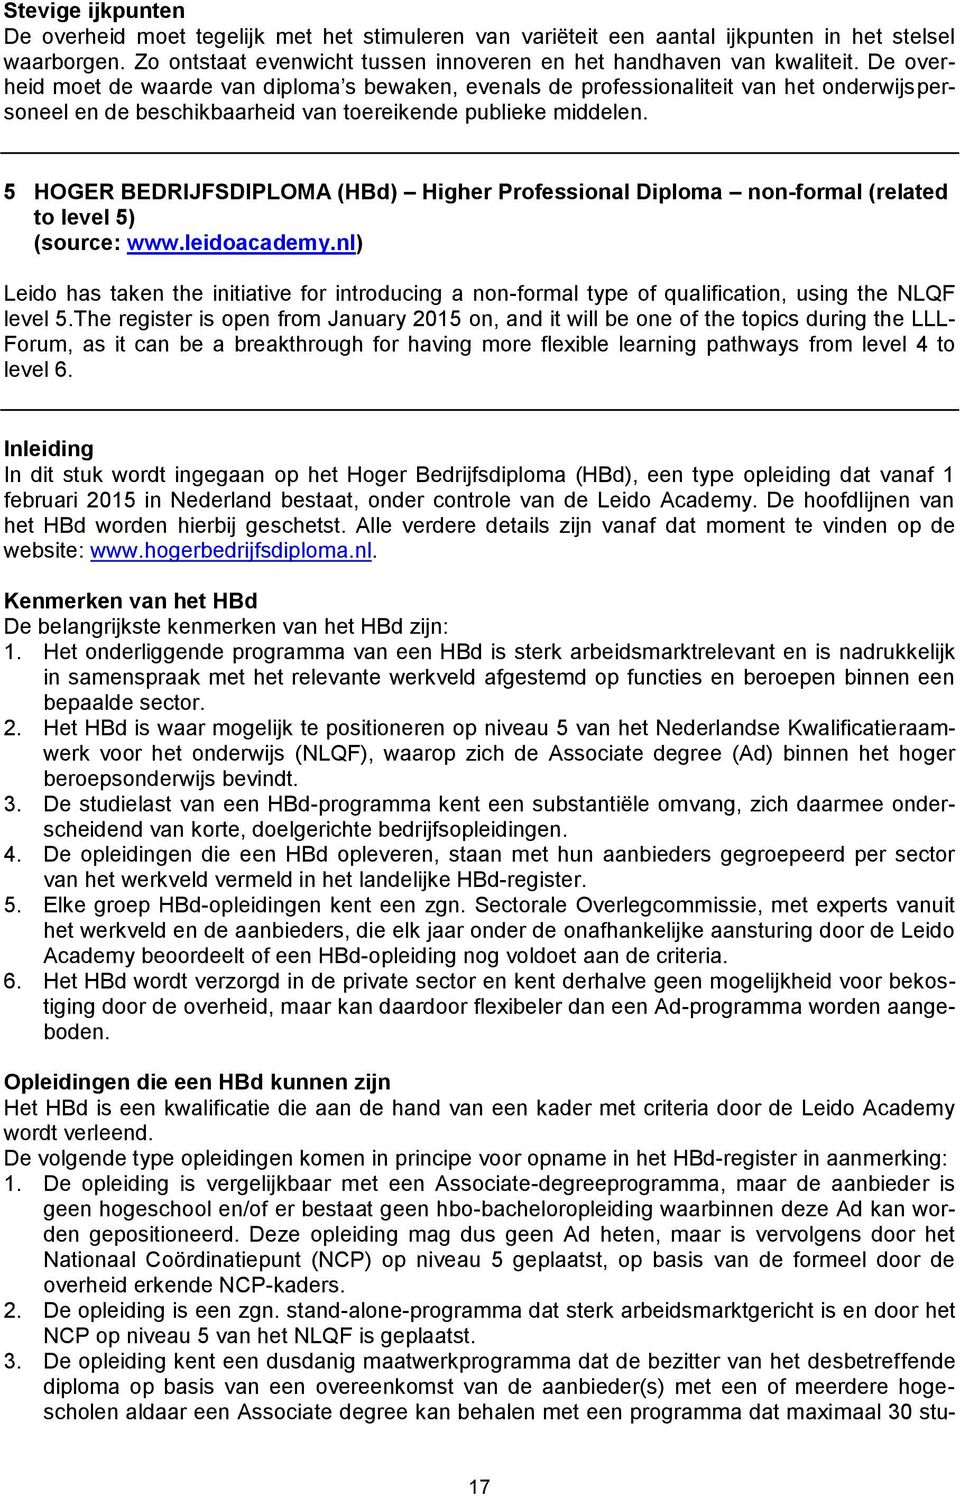 5 HOGER BEDRIJFSDIPLOMA (HBd) Higher Professional Diploma non-formal (related to level 5) (source: www.leidoacademy.